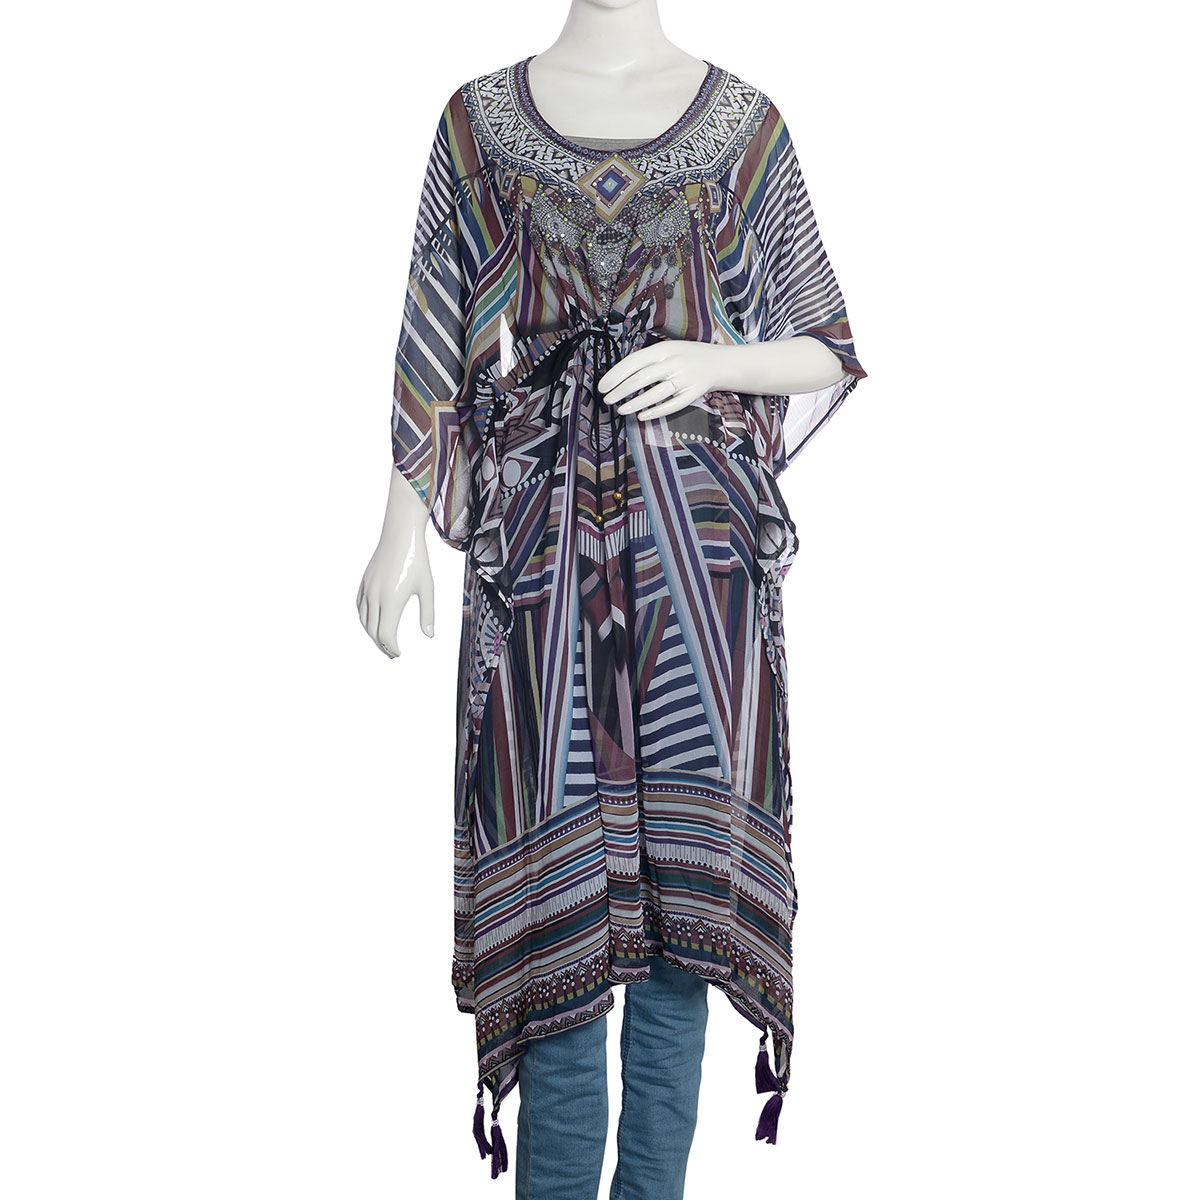 142961e04c Plum and Multi Color 100% Polyester Geometric Digital Printed Embellished  Scoop Neck Sheer Kaftan with Drawstring and Tassels (One Size)